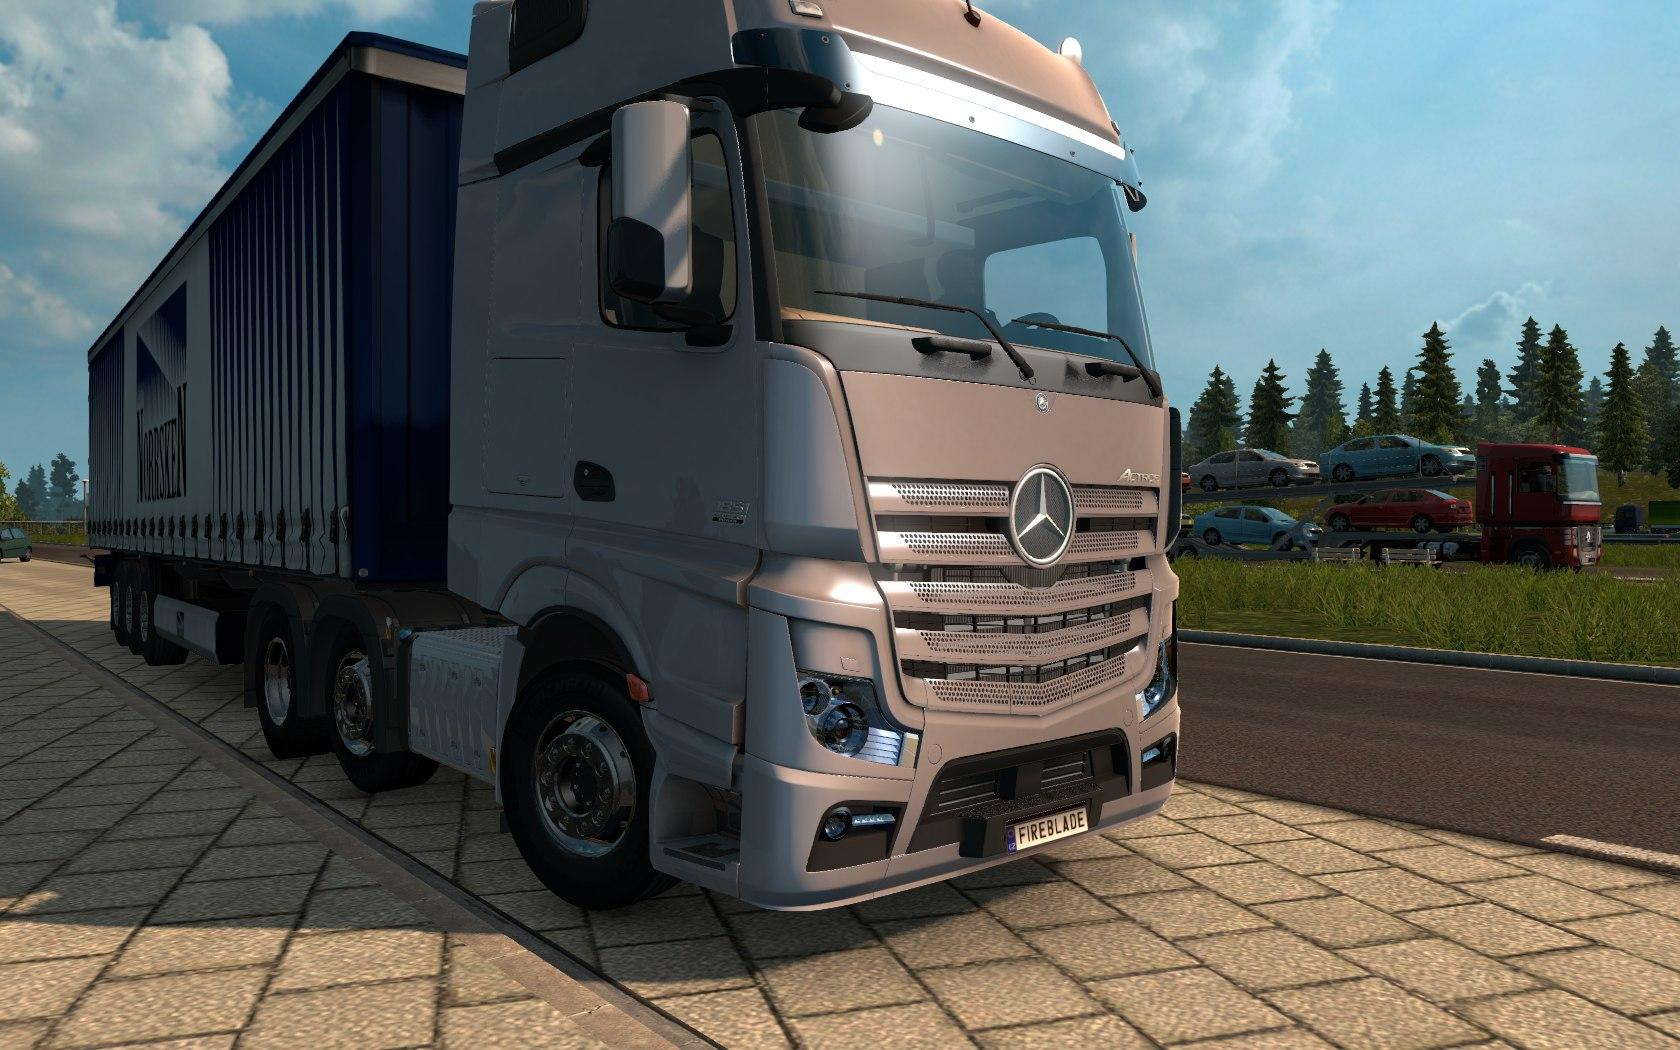 Iveco strator and volvo fh 2013 tuning euro truck simulator 2 mods - Mercedes Actros Mp4 1 22 Ets 2 Mods Euro Truck